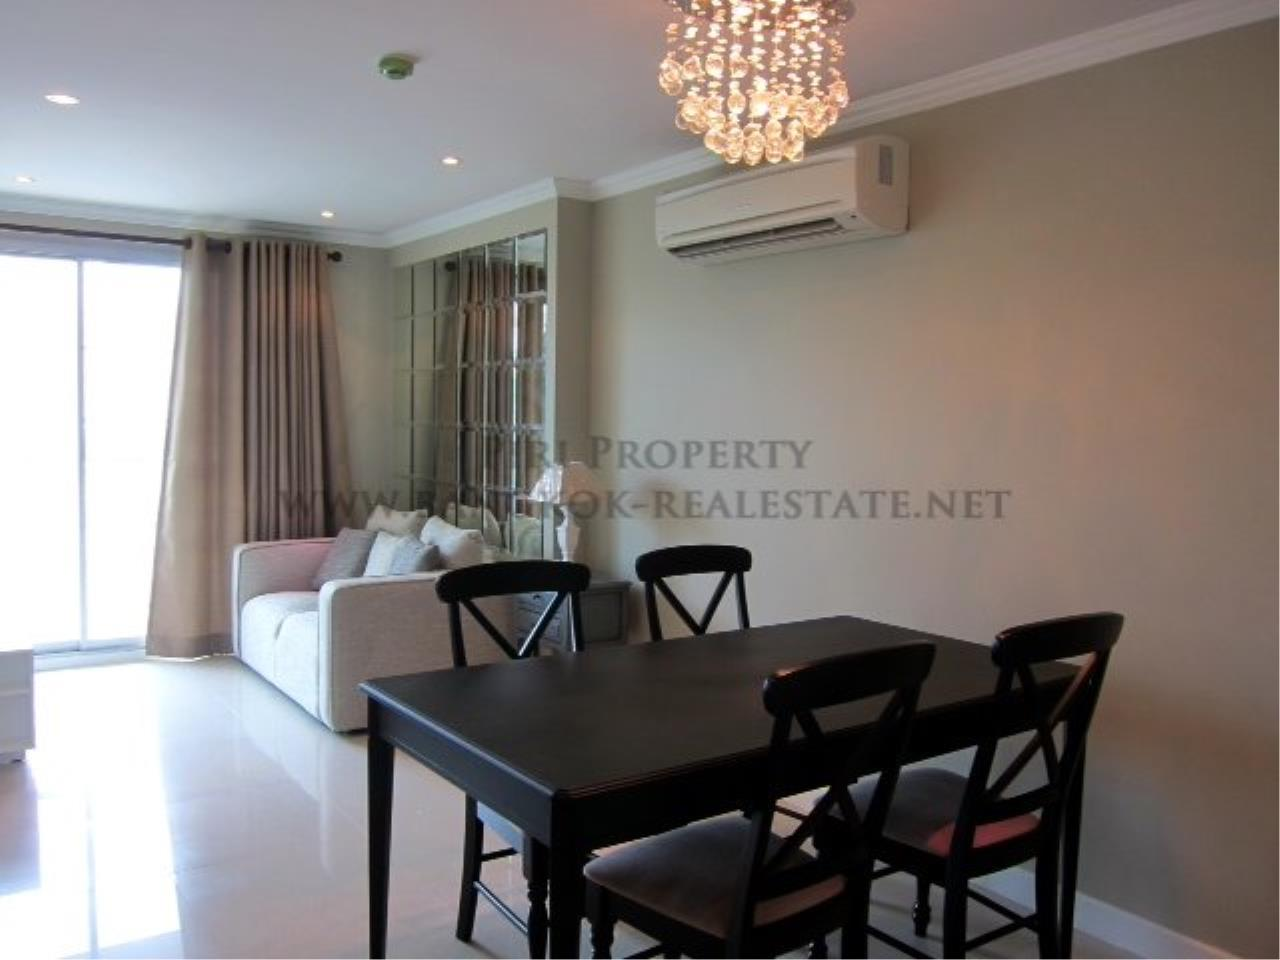 Piri Property Agency's 1 Bedroom - The Clover Thonglor - For rent 2